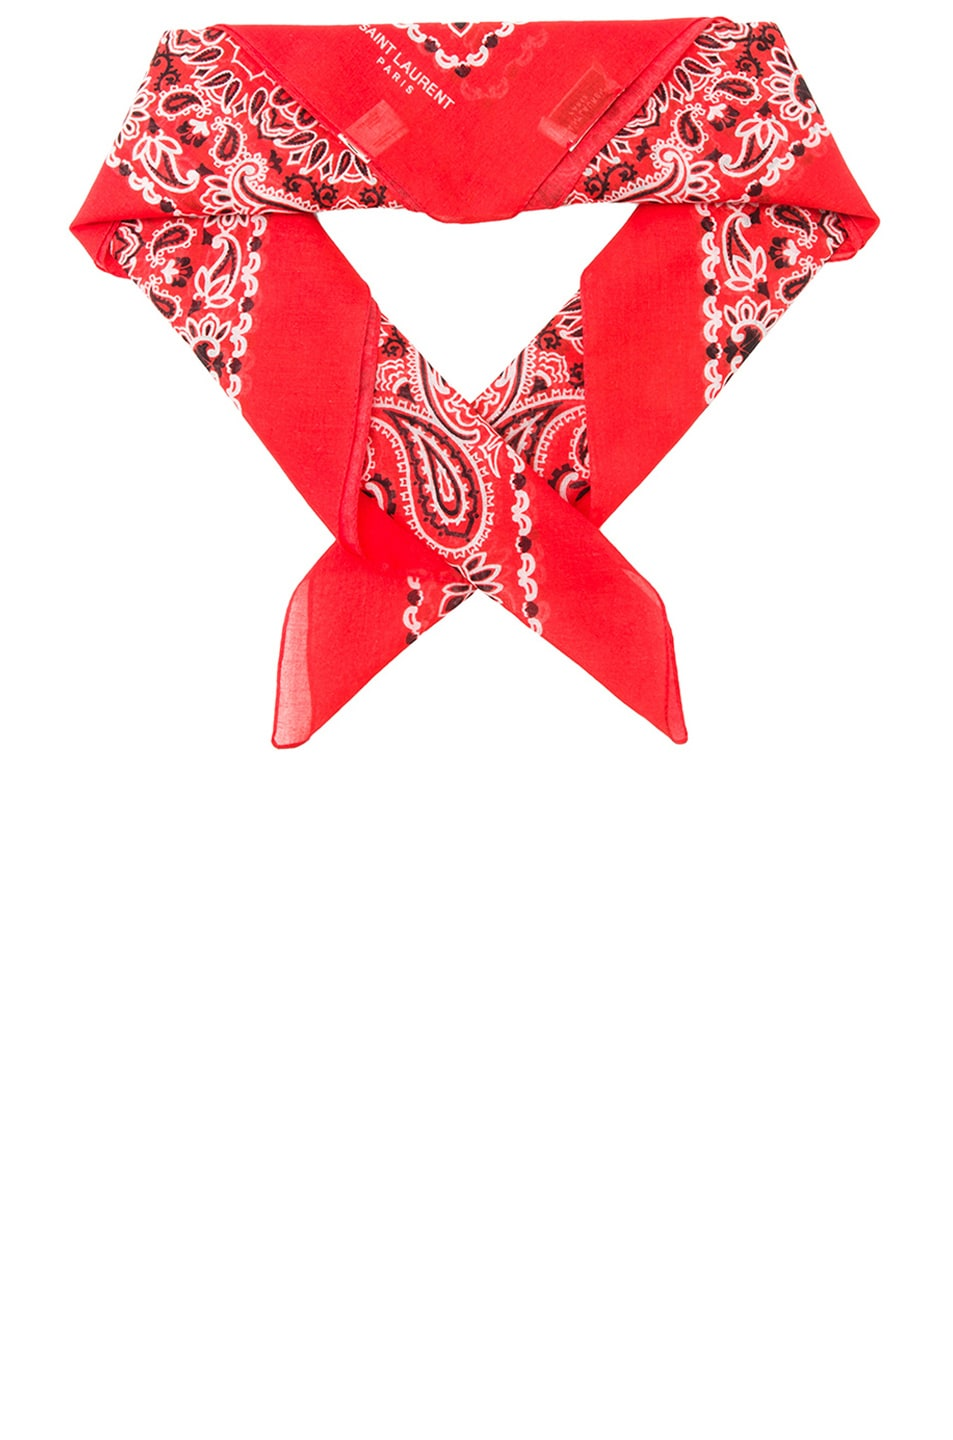 Image 1 of Saint Laurent Bandana Print Scarf in Lipstick Red & White